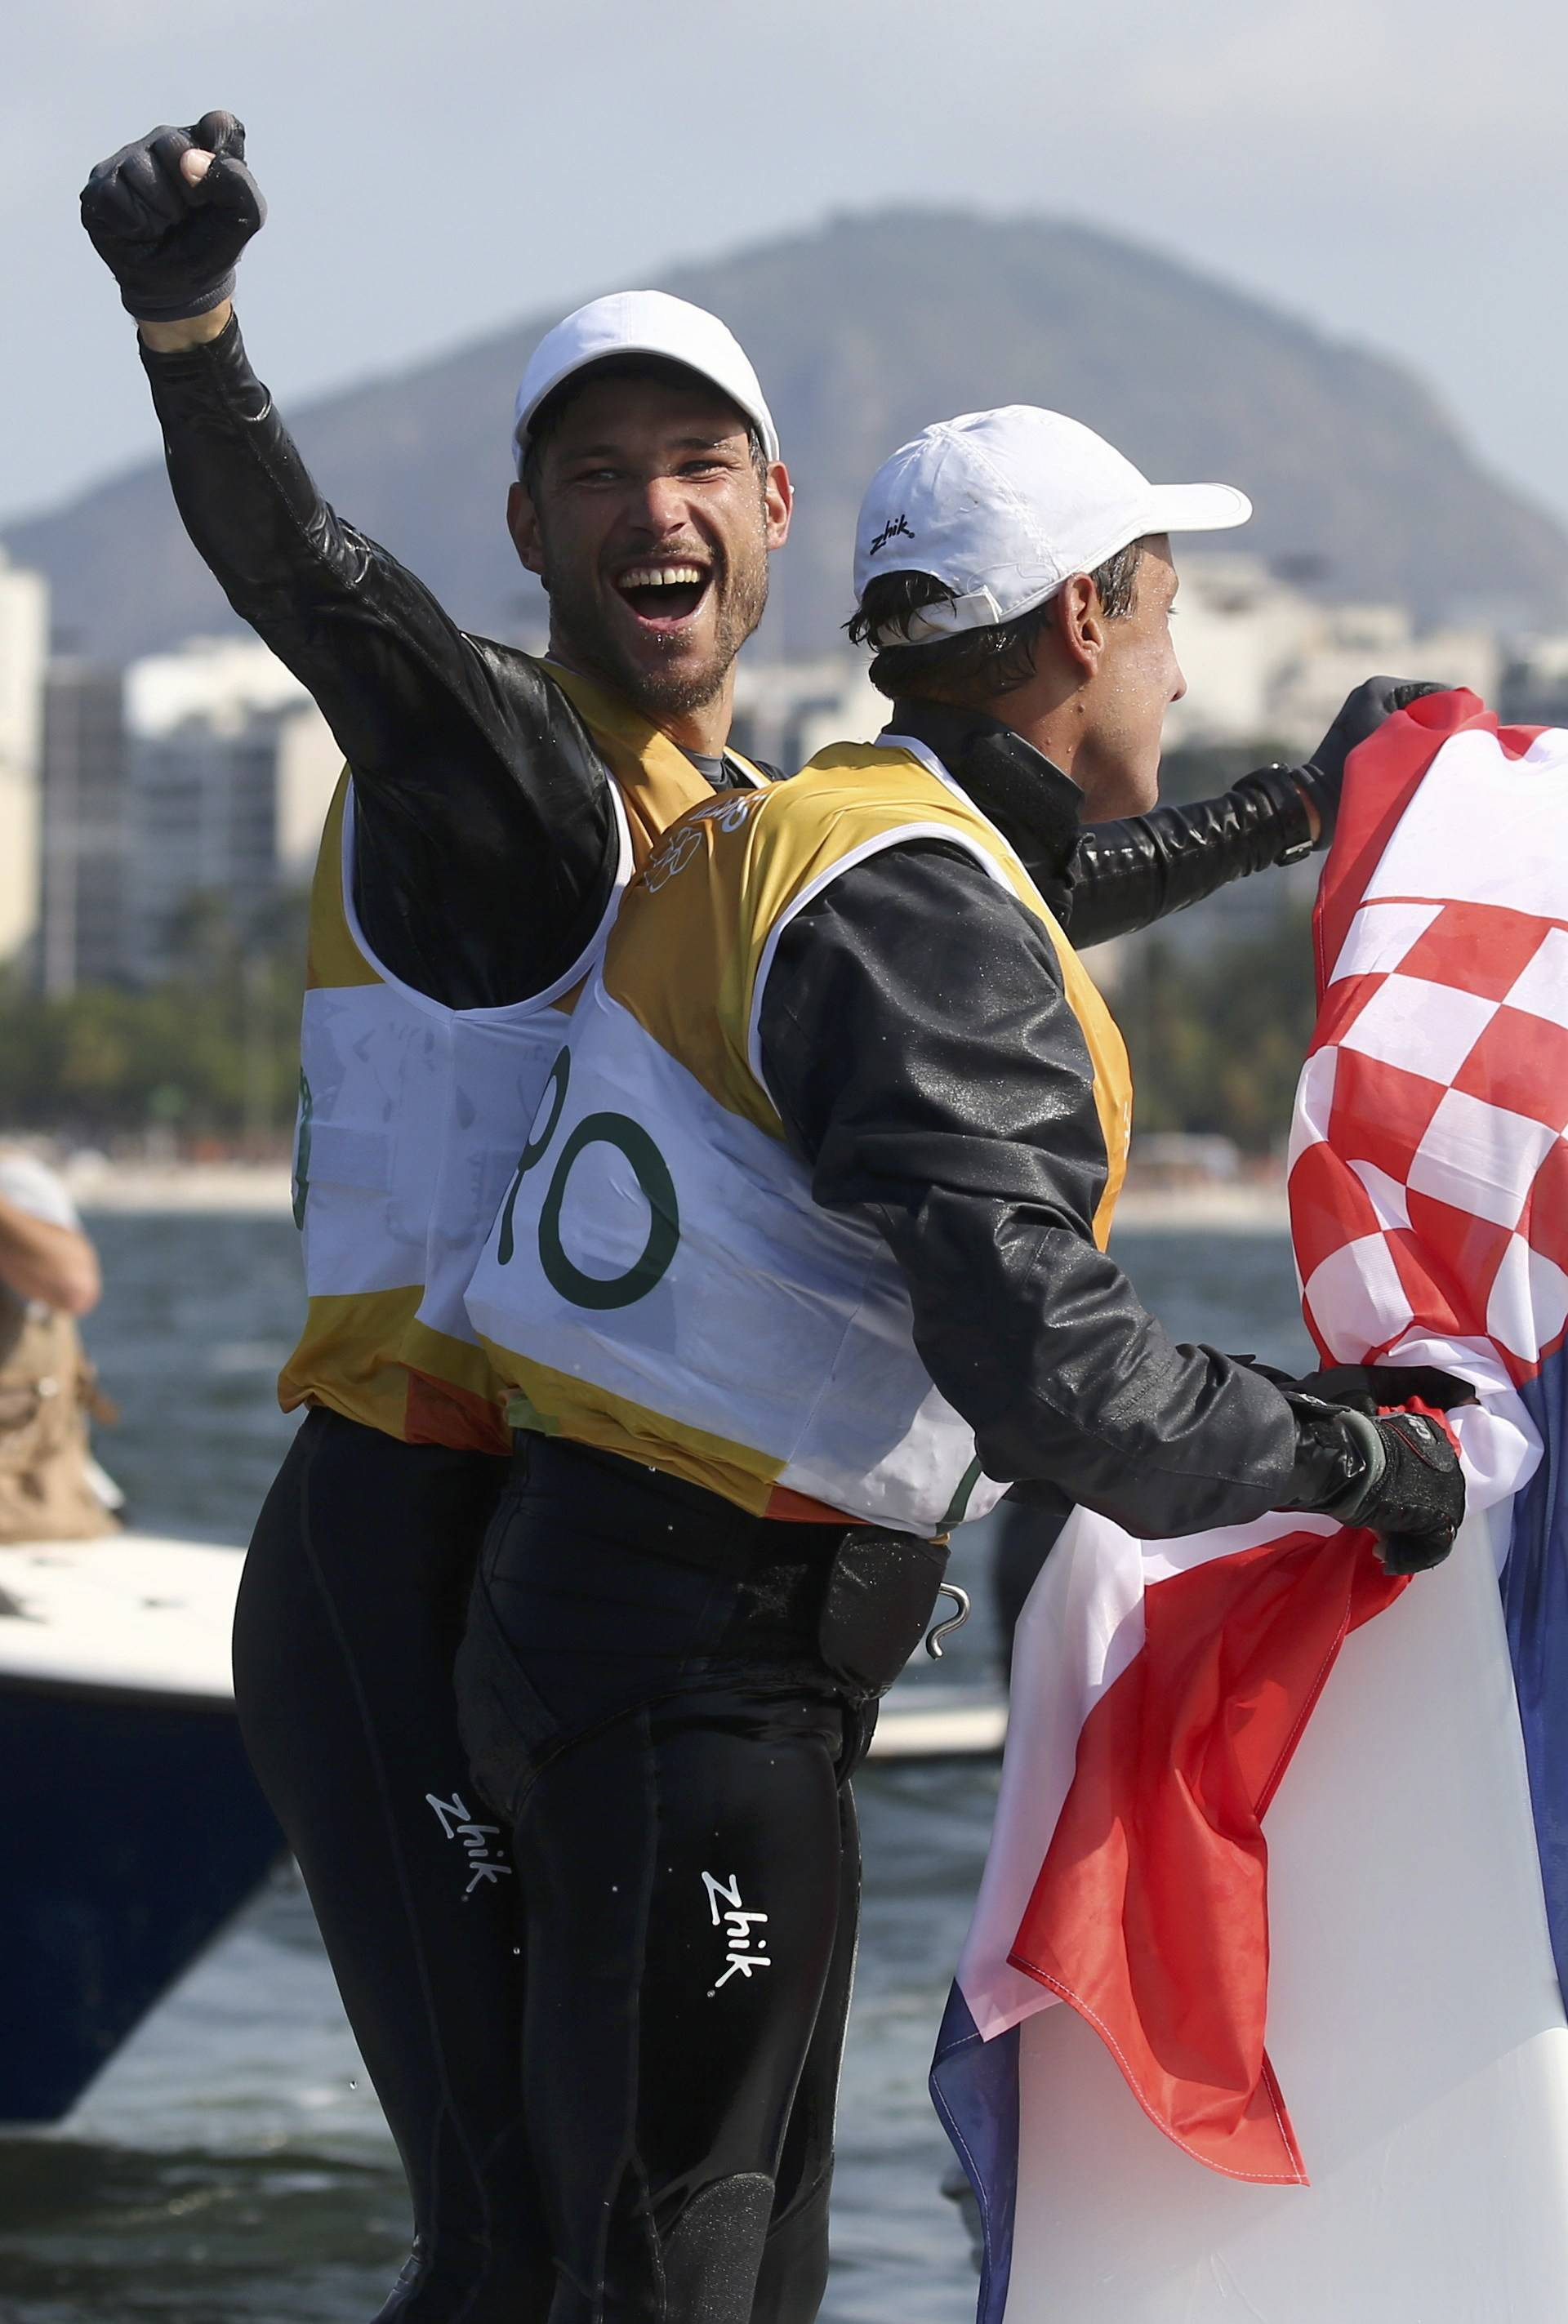 Sailing - Men's Two Person Dinghy - 470 - Medal Race